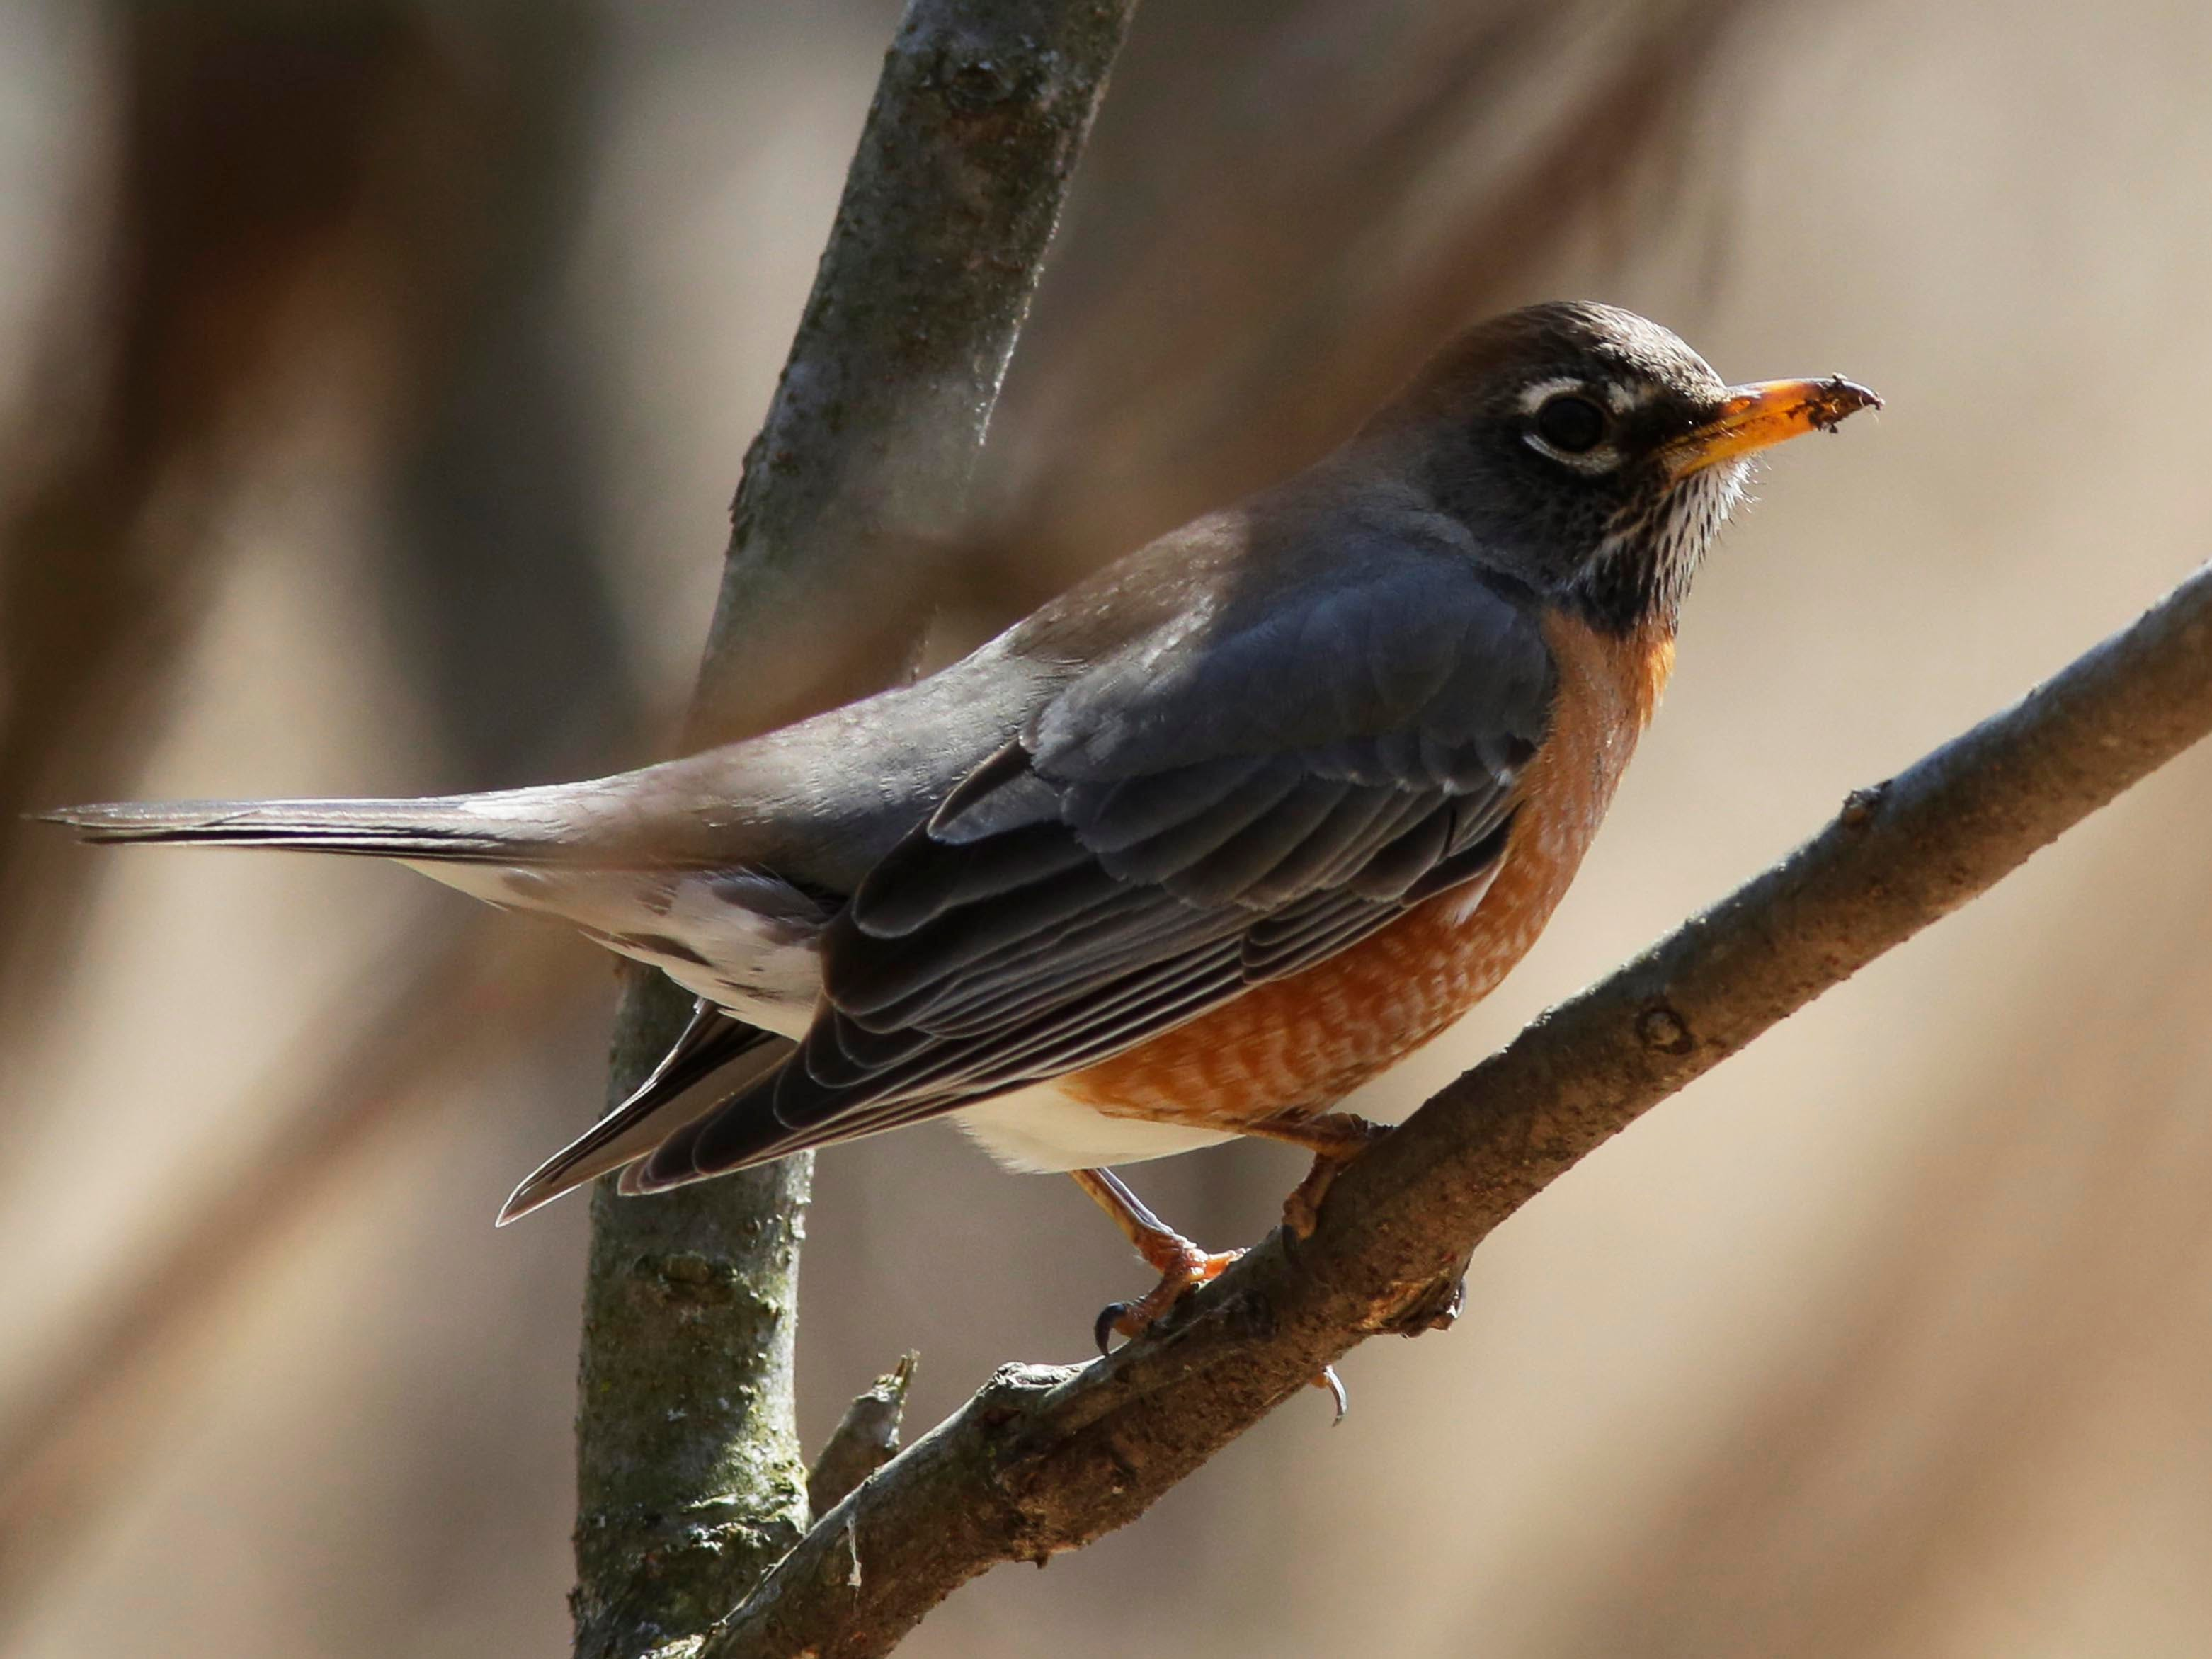 A robin watches from a branch at the Ellwood H. May Environmental Park, Wednesday, March 28, 2018, in Sheboygan, Wis.